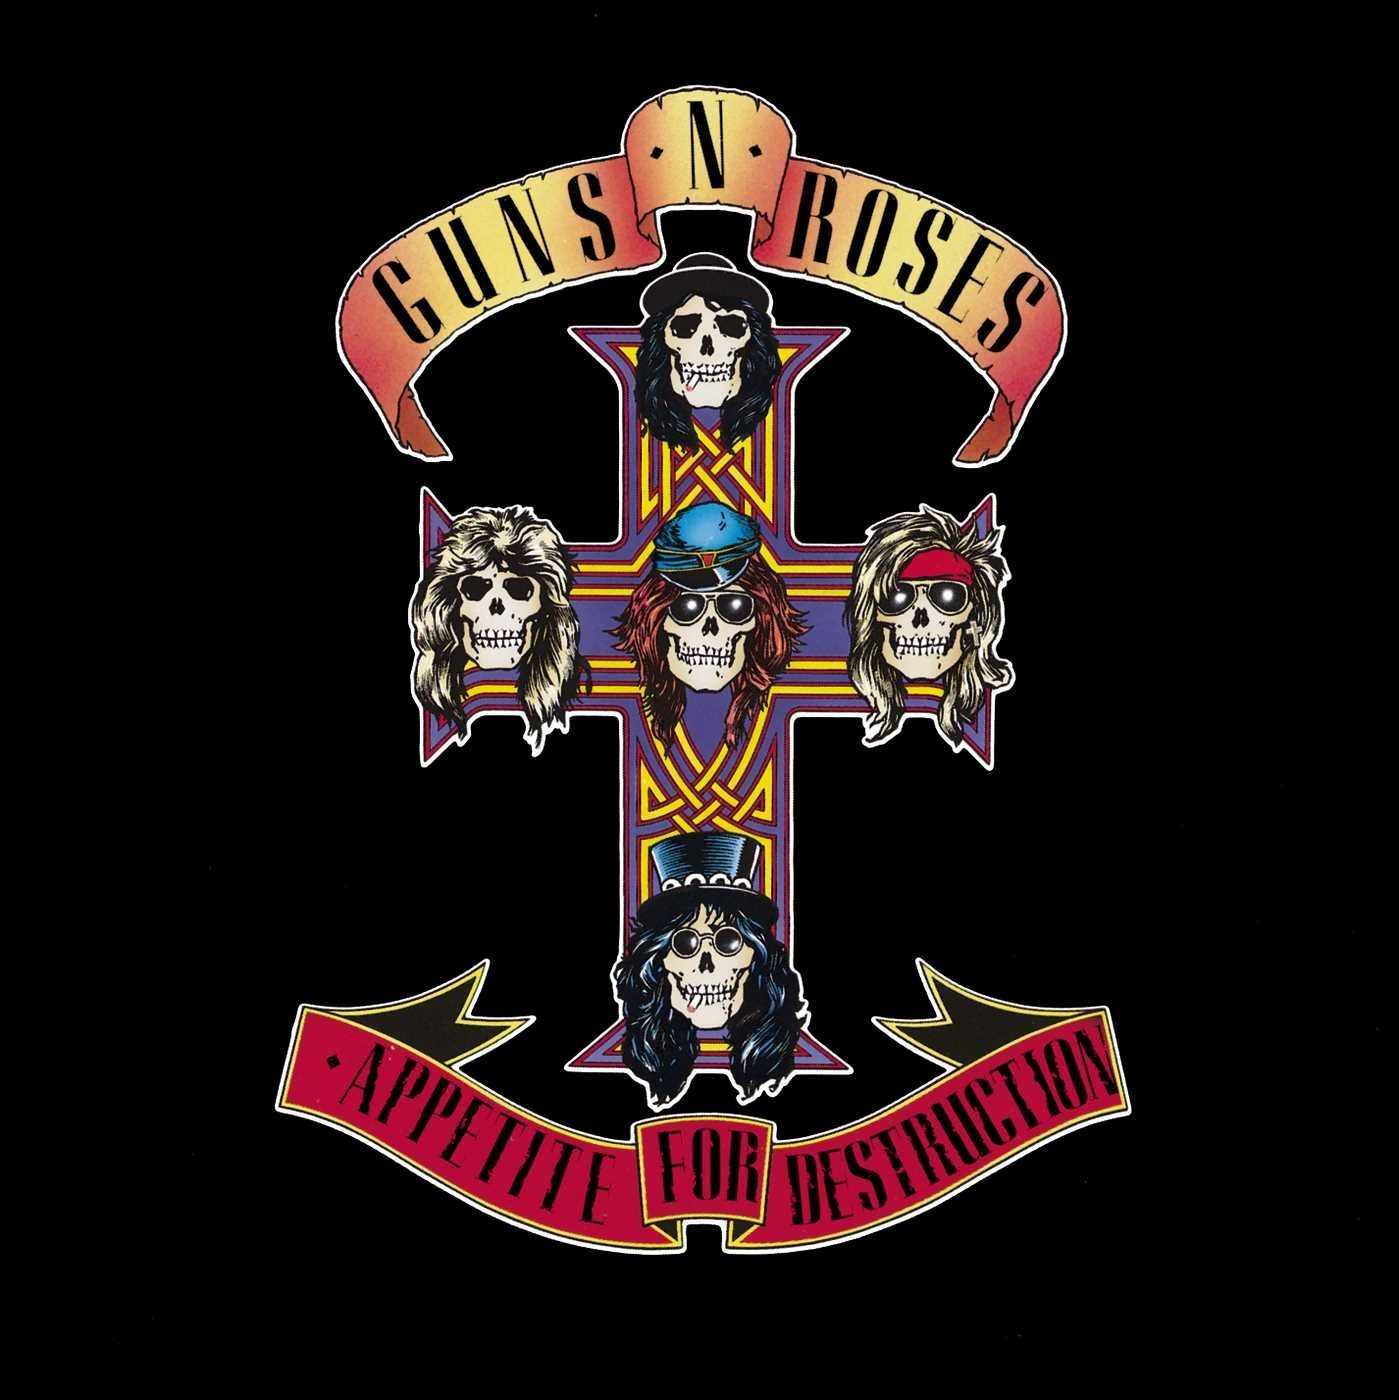 Guns N Roses Appetite for Destruction review